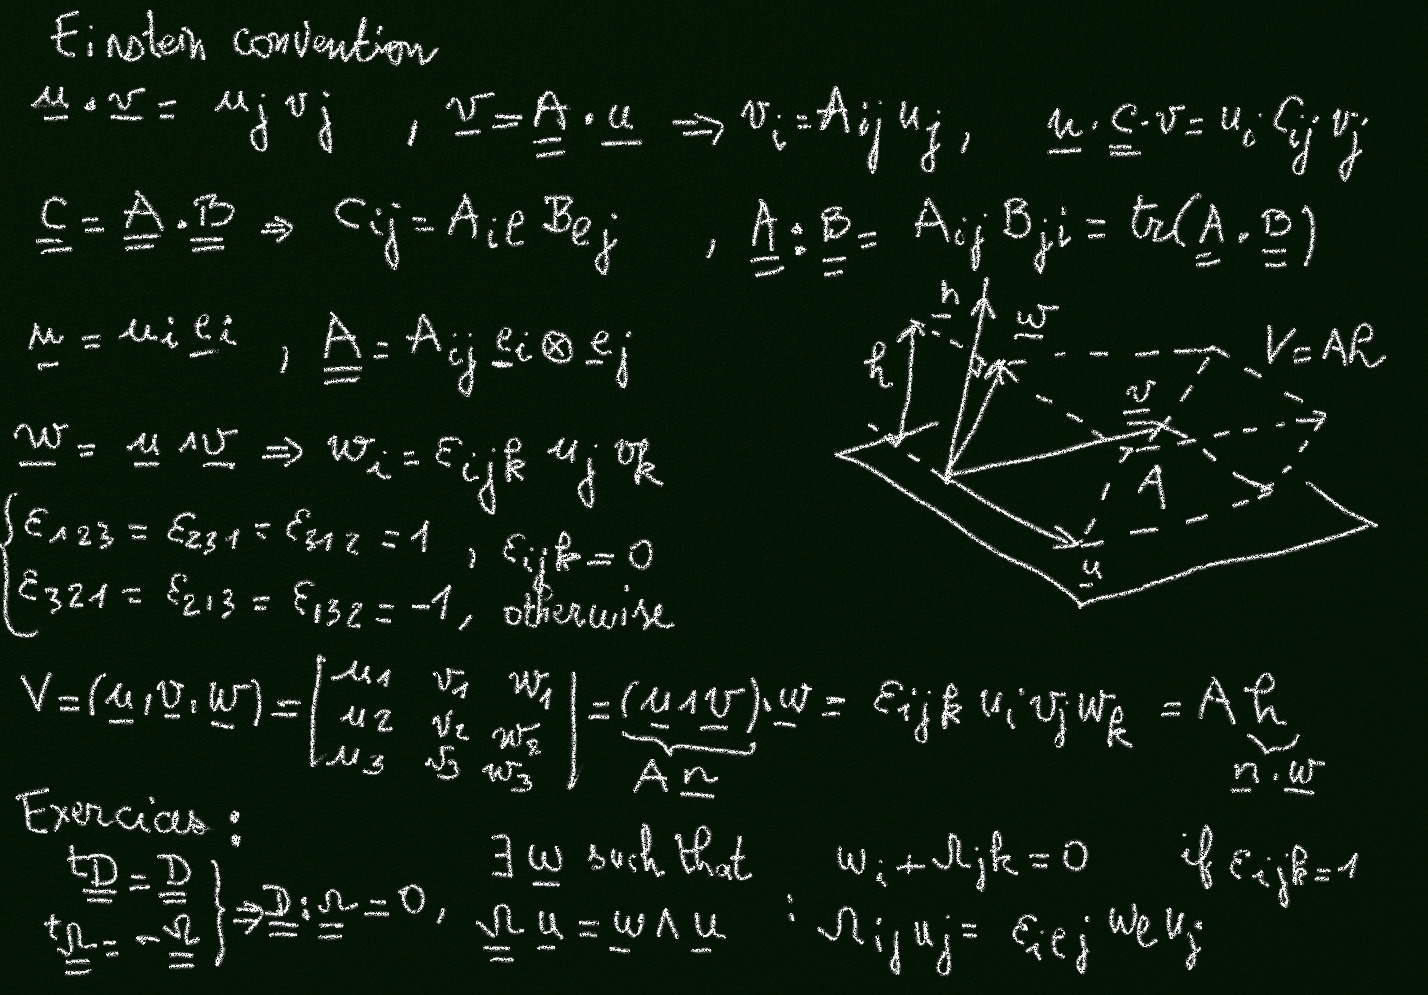 an analysis of quantum mechanic laws and experiments Schrödinger equation and quantum chemistry  relationship between quantum mechanics and quantum chemistry  atomistic experiments sample instead the behavior of .